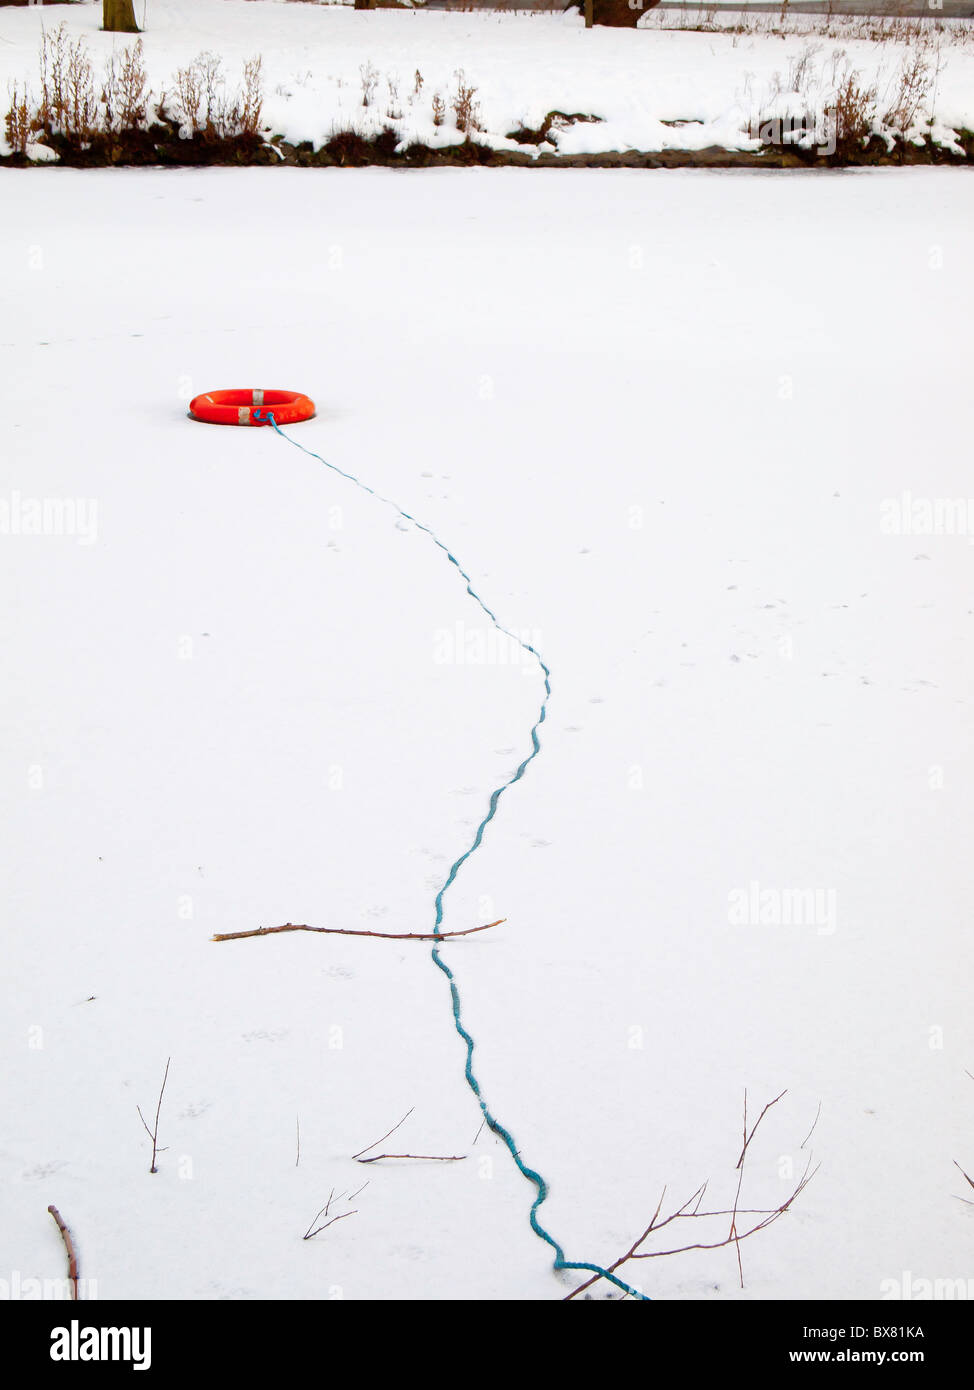 A lifebuoy thrown out on an ice and snow covered lake by vandals - Stock Image